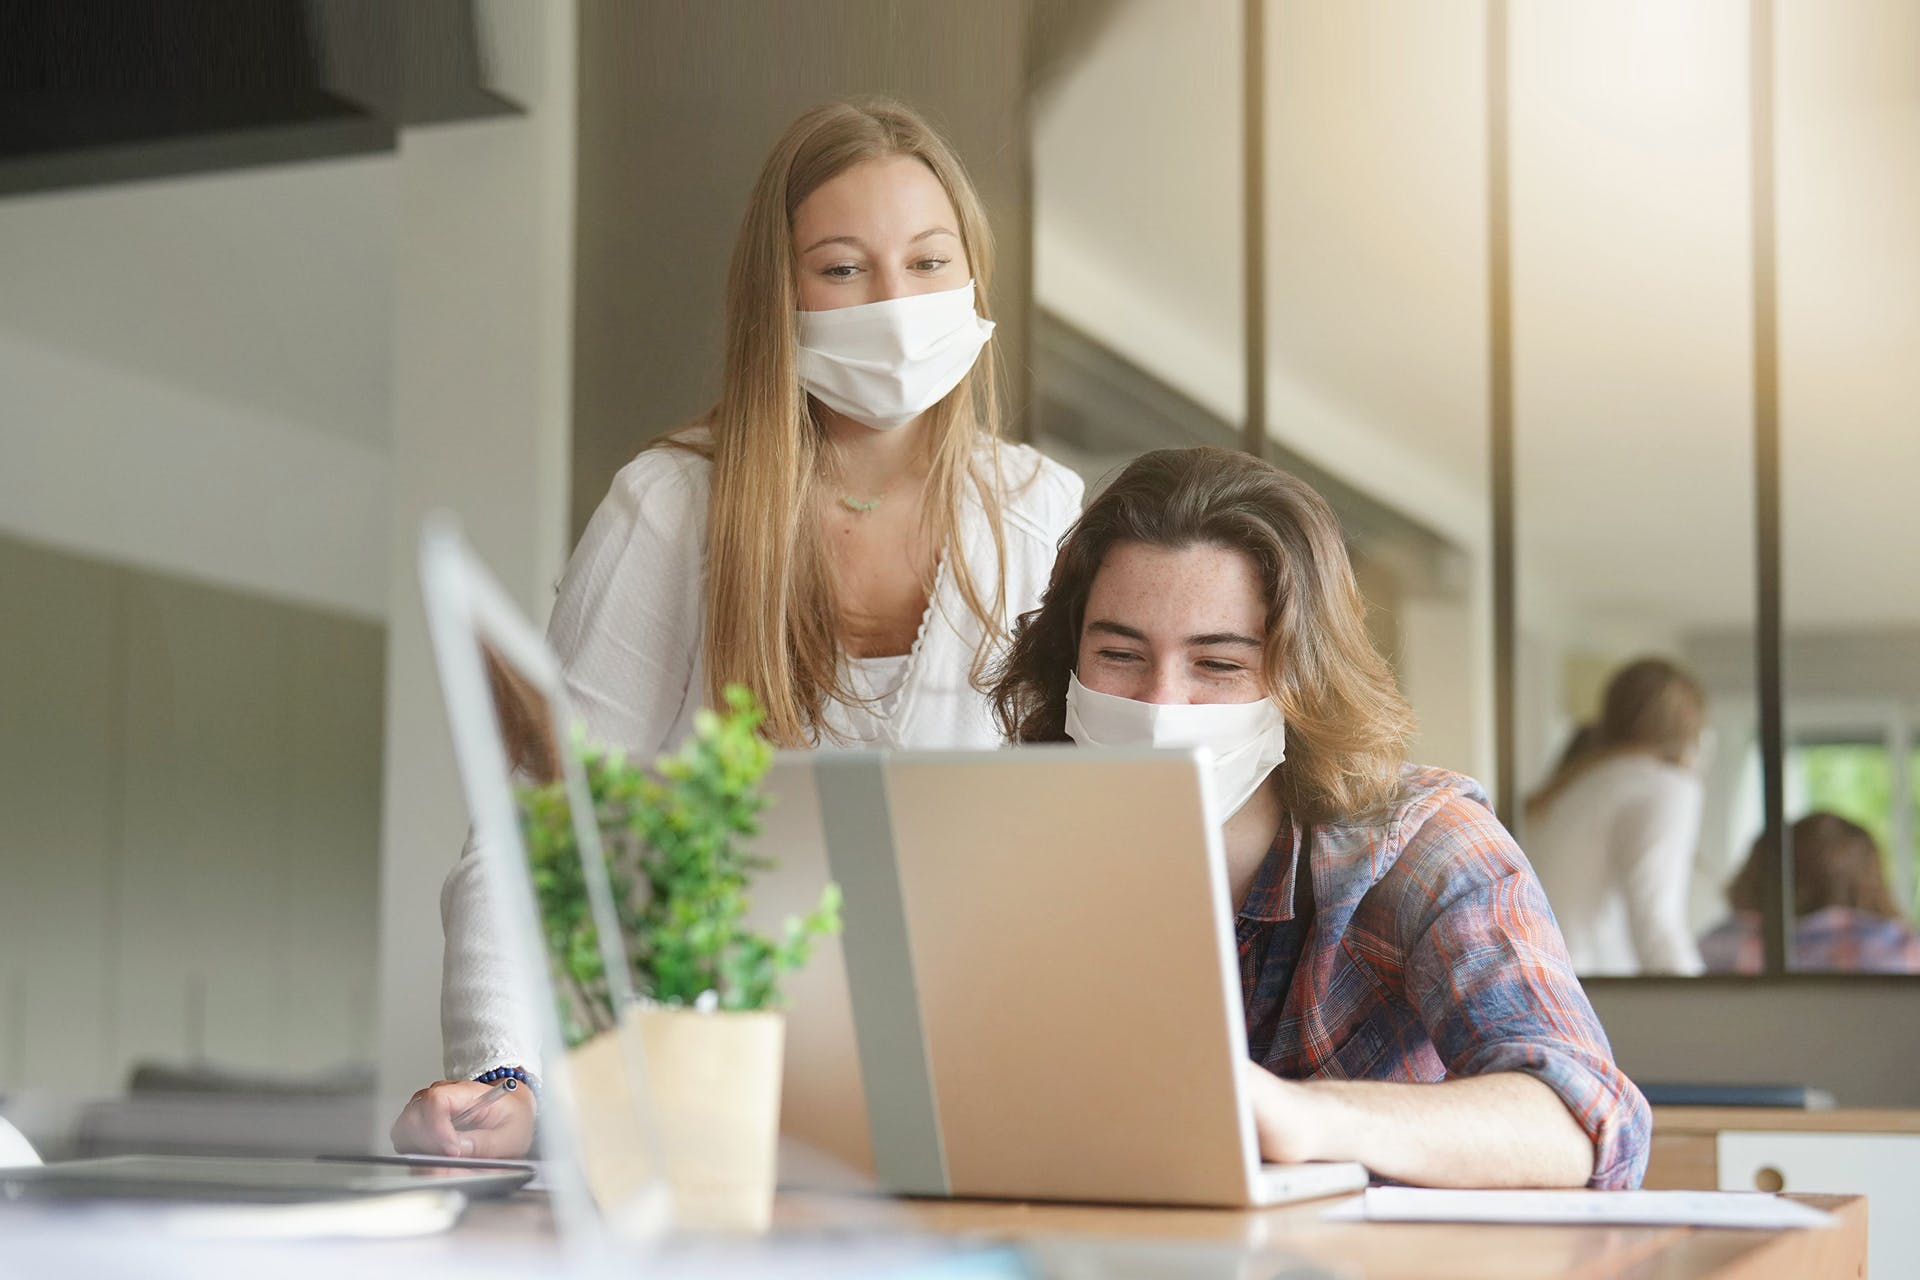 Two people in face masks looking at a laptop screen